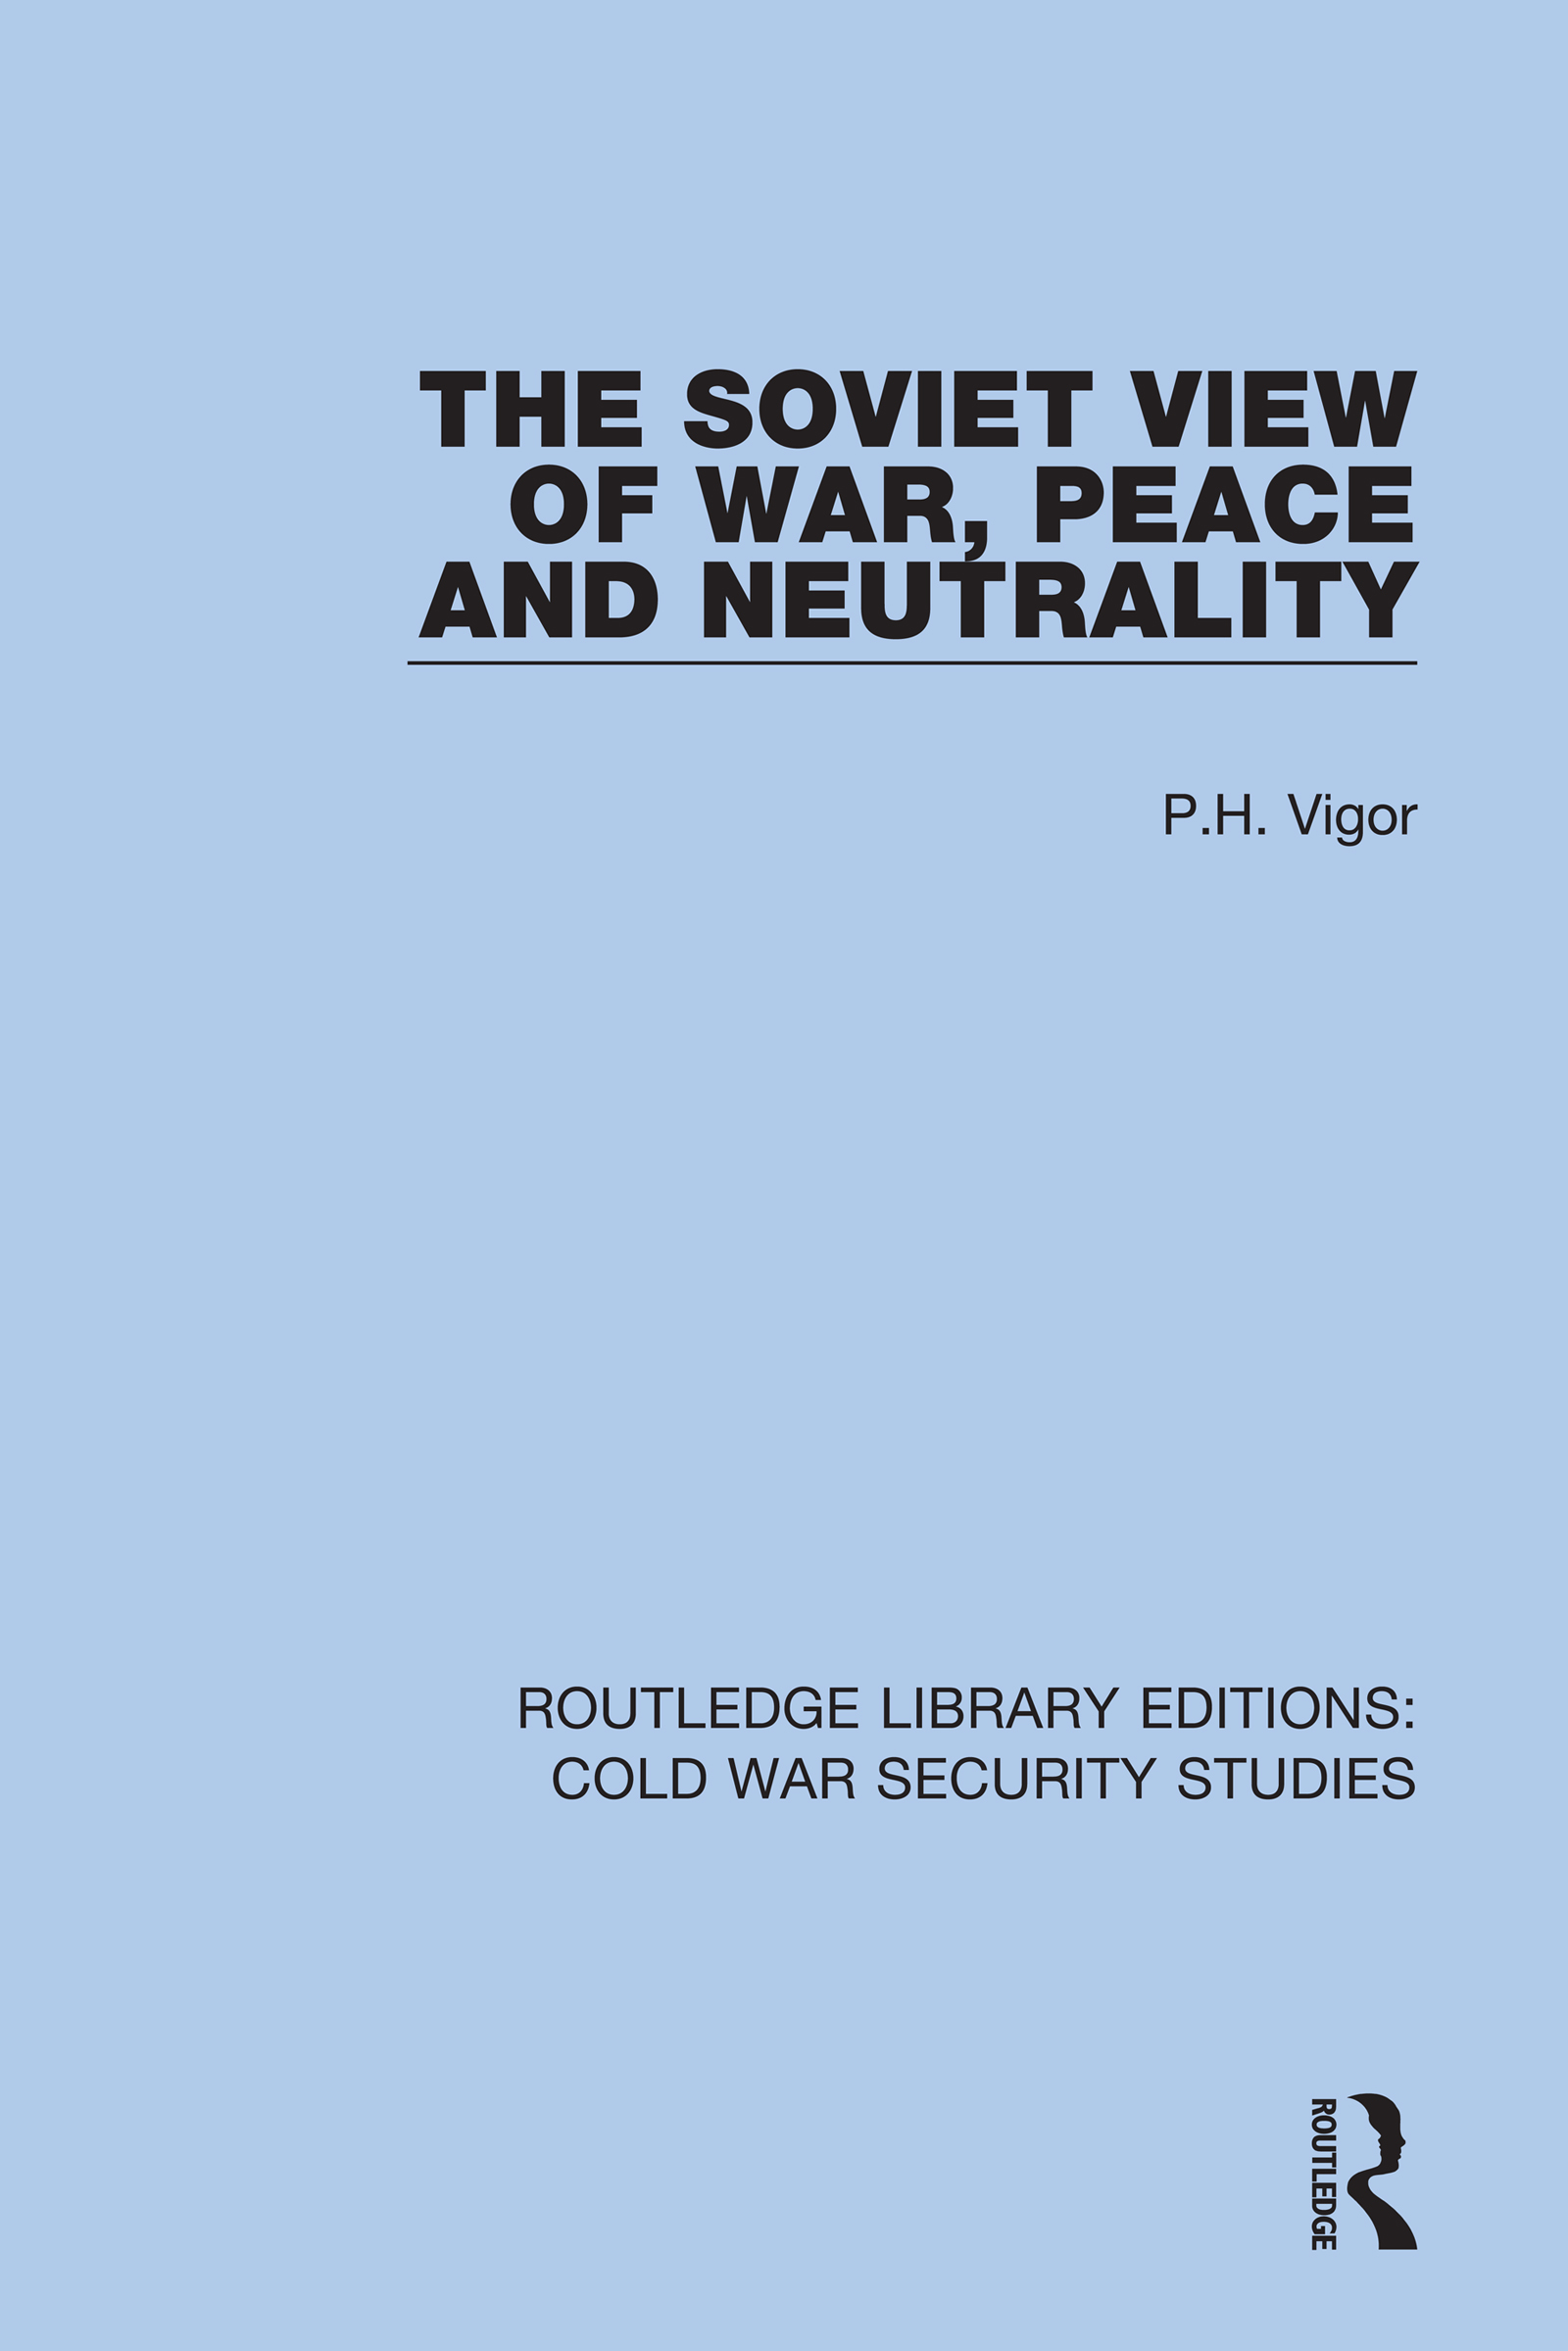 The Soviet View of War, Peace and Neutrality